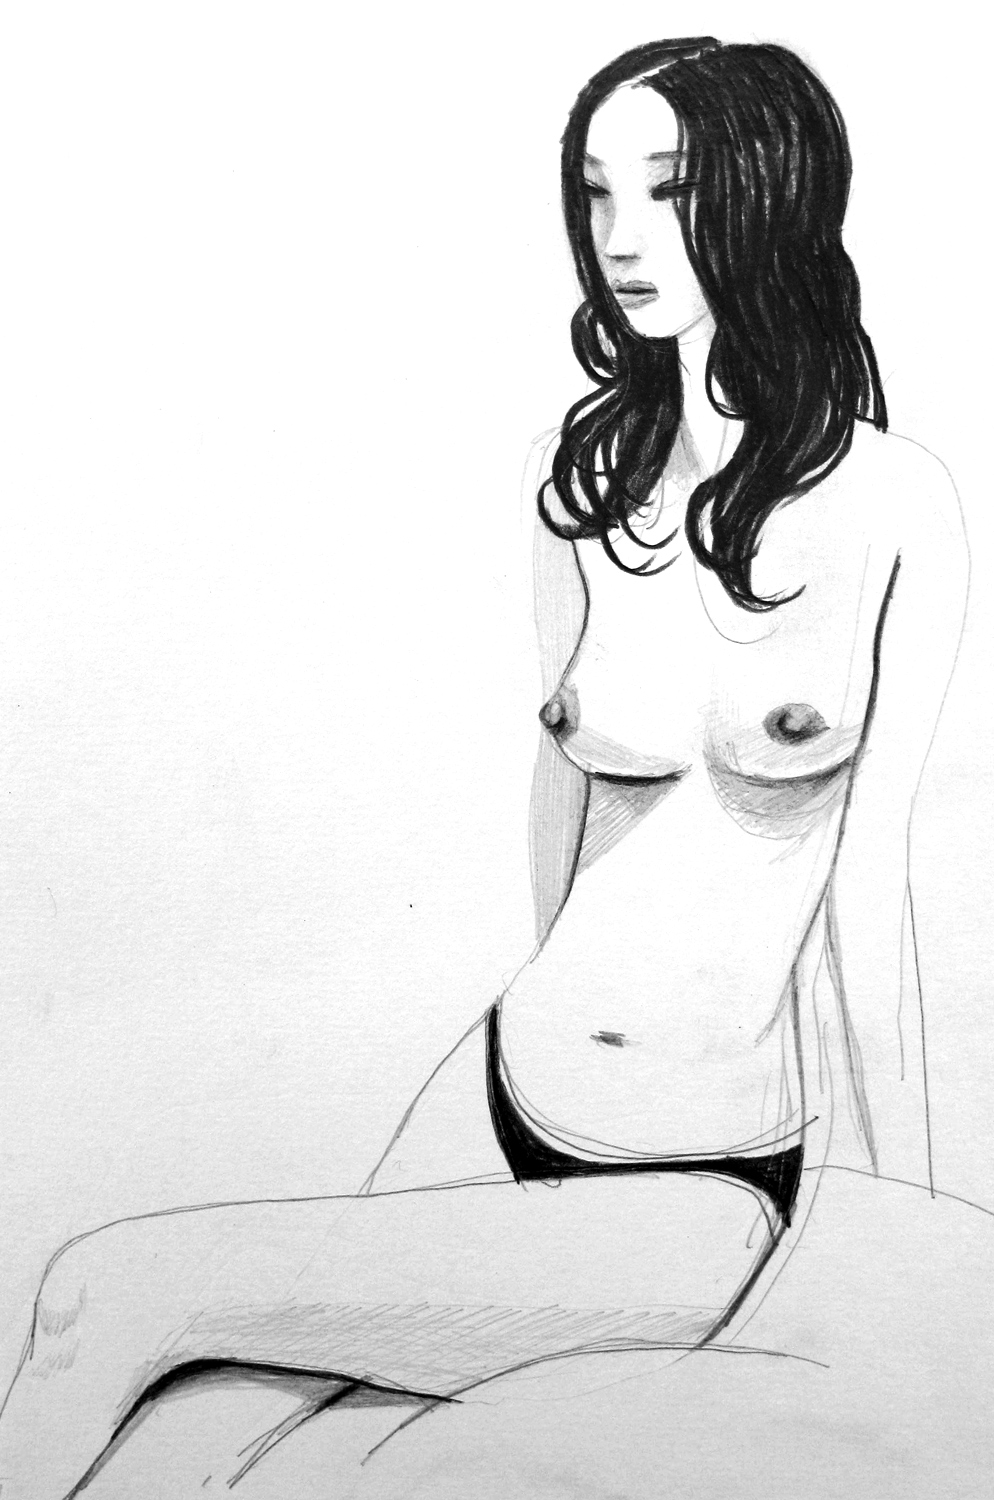 Sketch of a girl in a Love Hotel